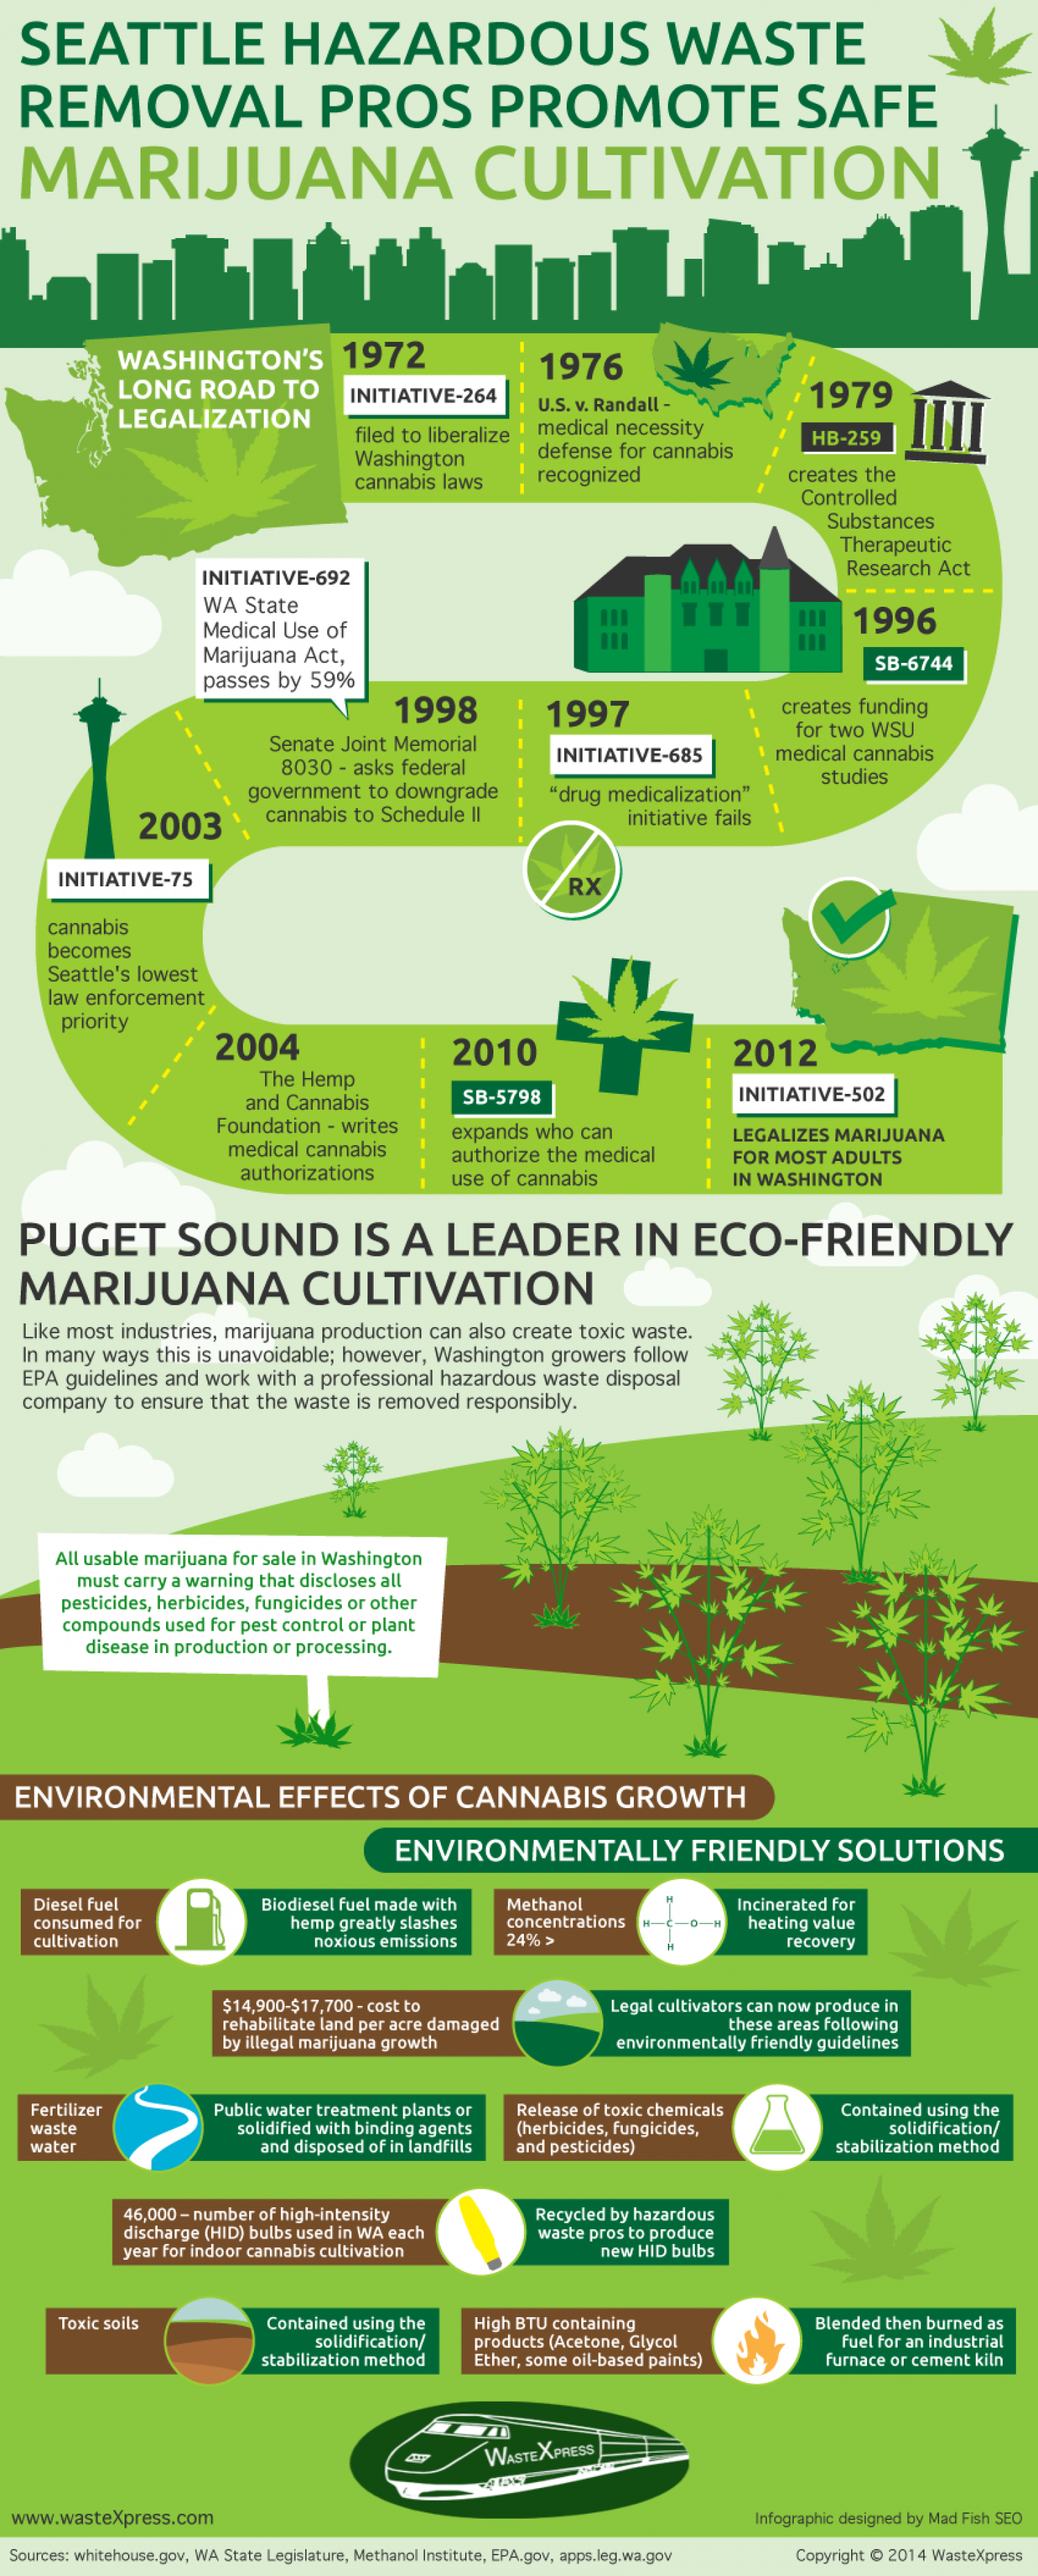 Seattle Hazardous Waste Removal Pros Promote Safe Marijuana Cultivation  Infographic